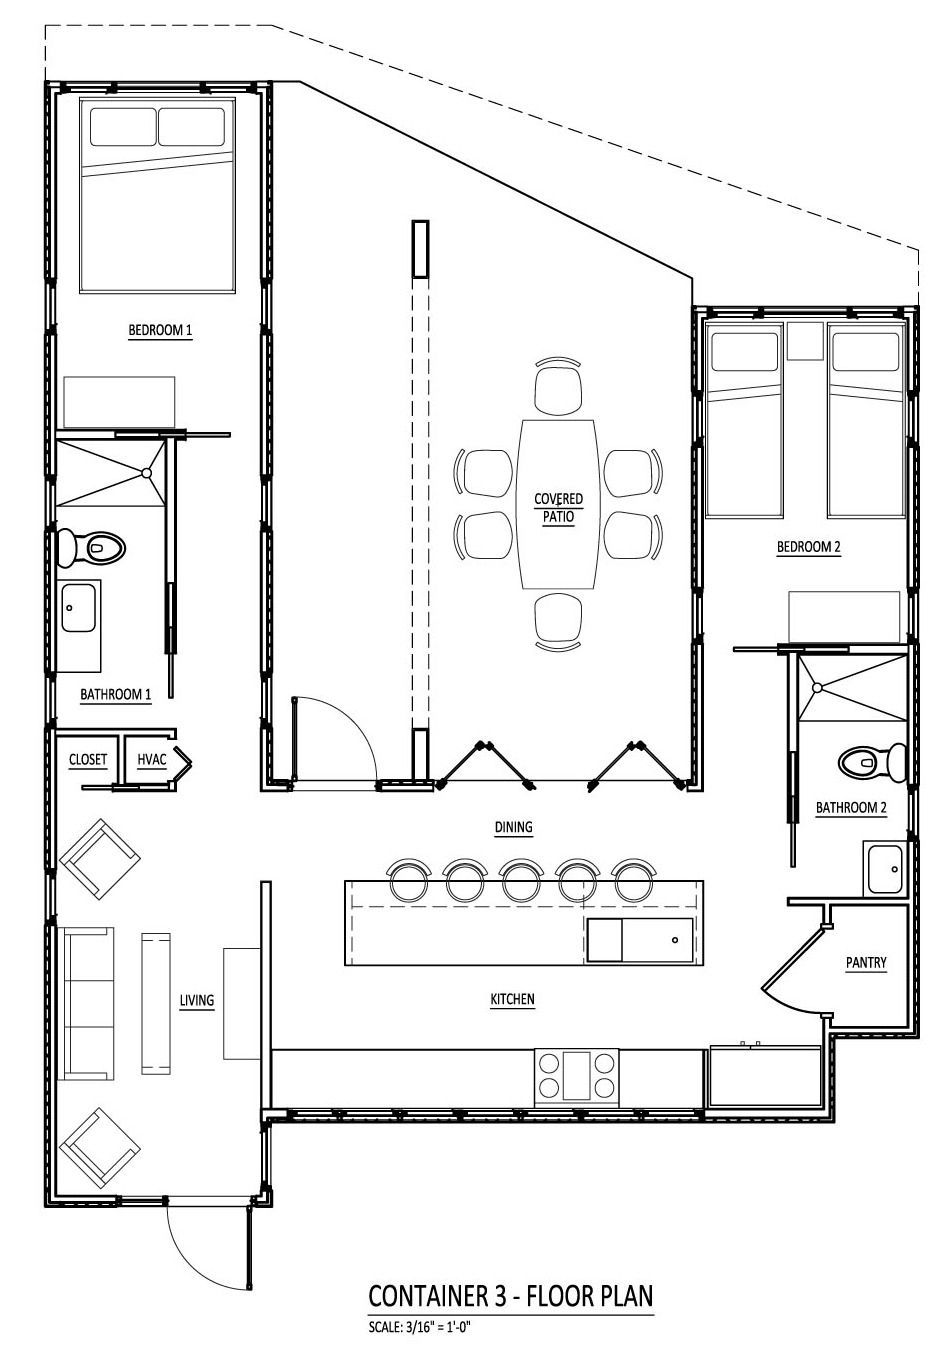 u shaped floor plan using only 3 #shipping #containers #jsiglobal